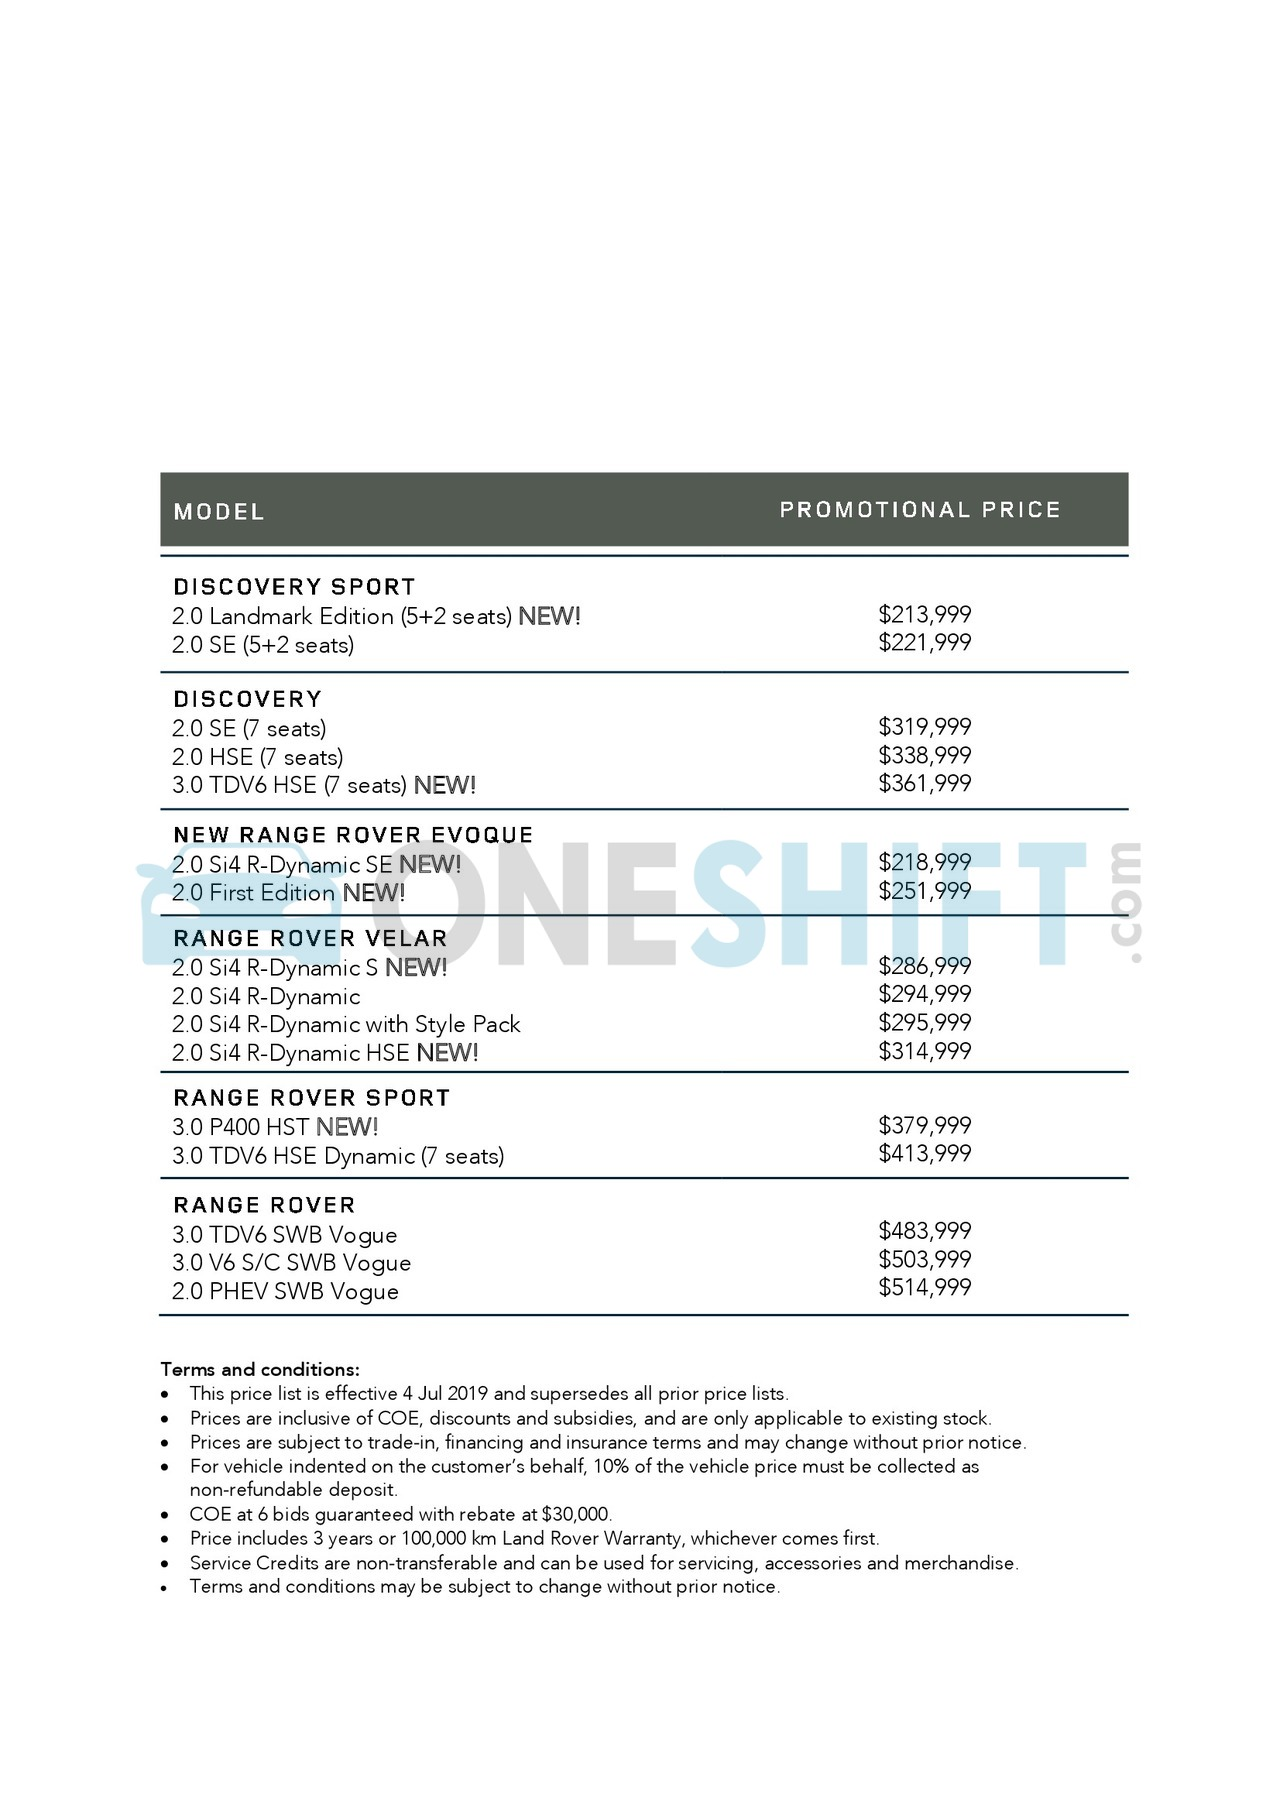 land-rover Price List 7-4-2019 Page 1